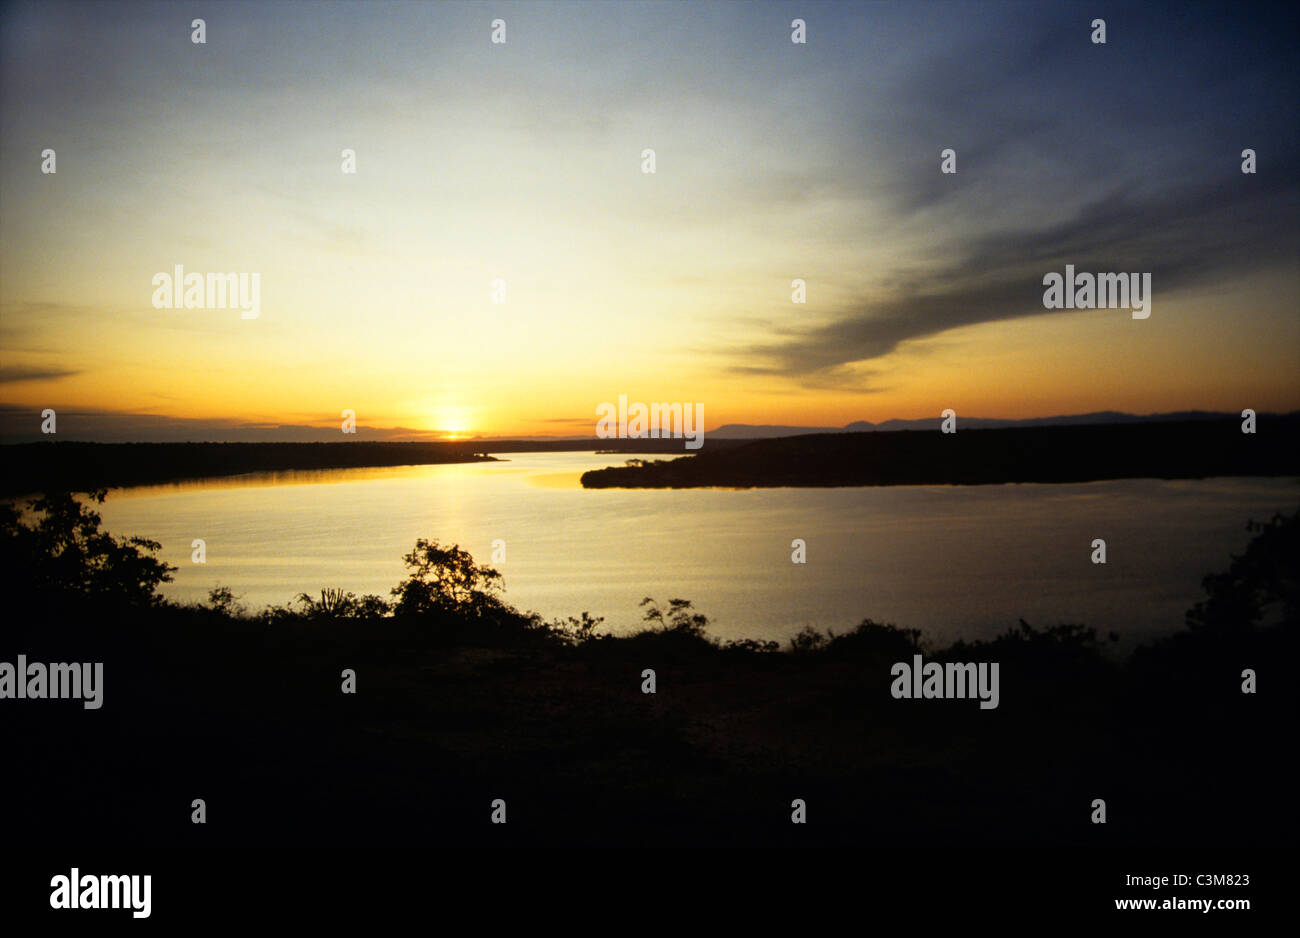 chari river between cameroon and Chad - Stock Image